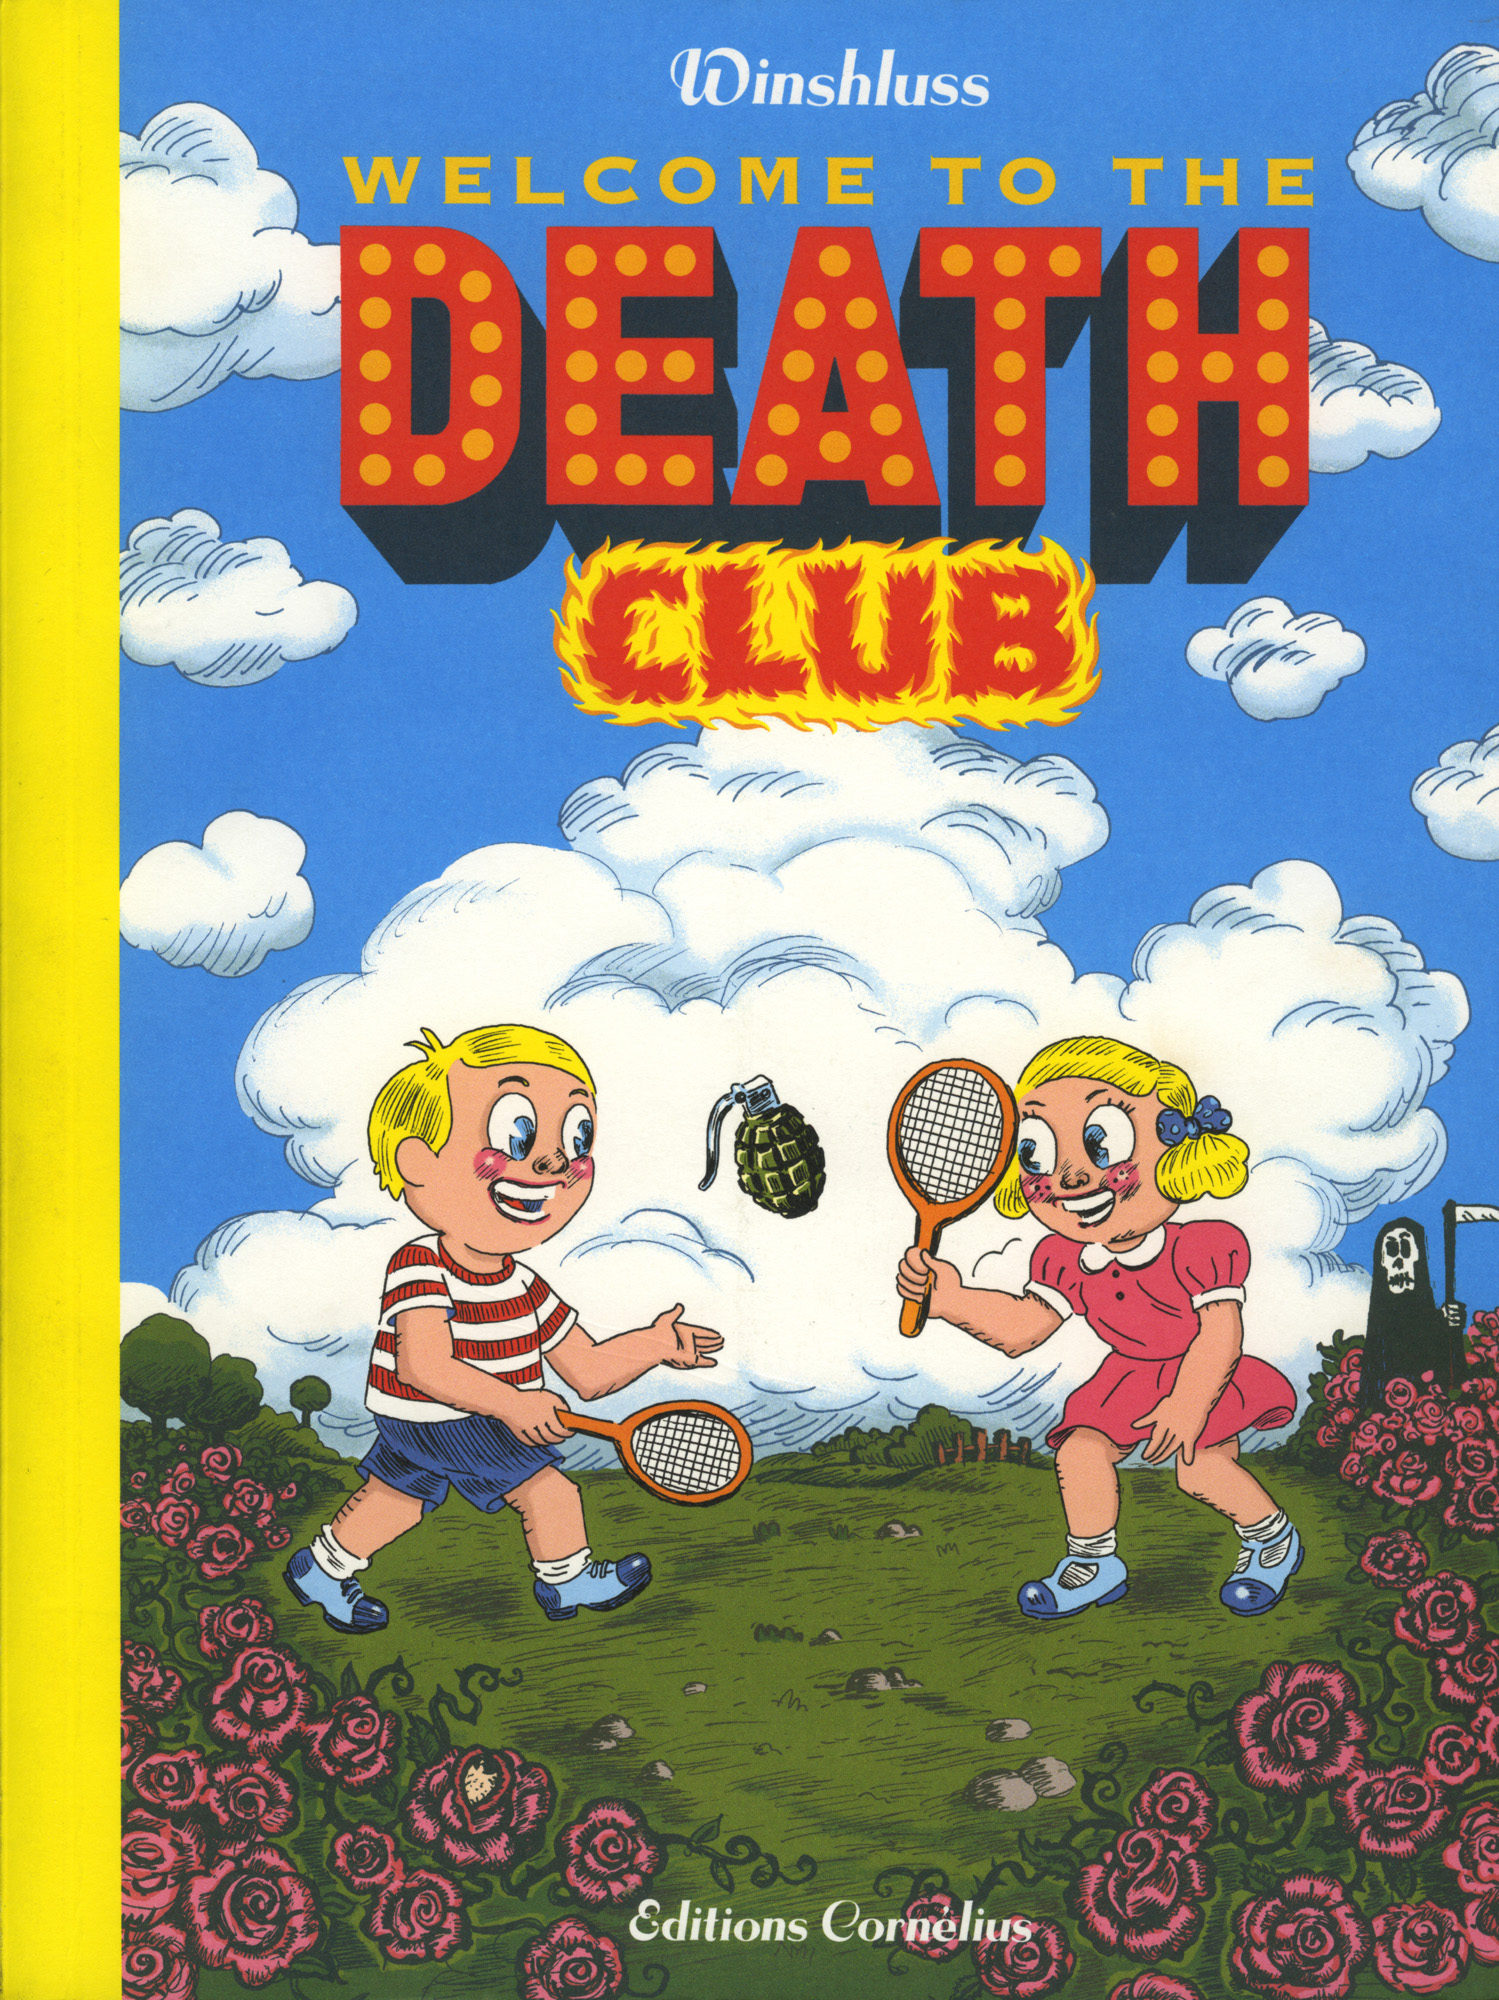 Welcome to the Death club - Galerie Georges-Philippe & Nathalie Vallois